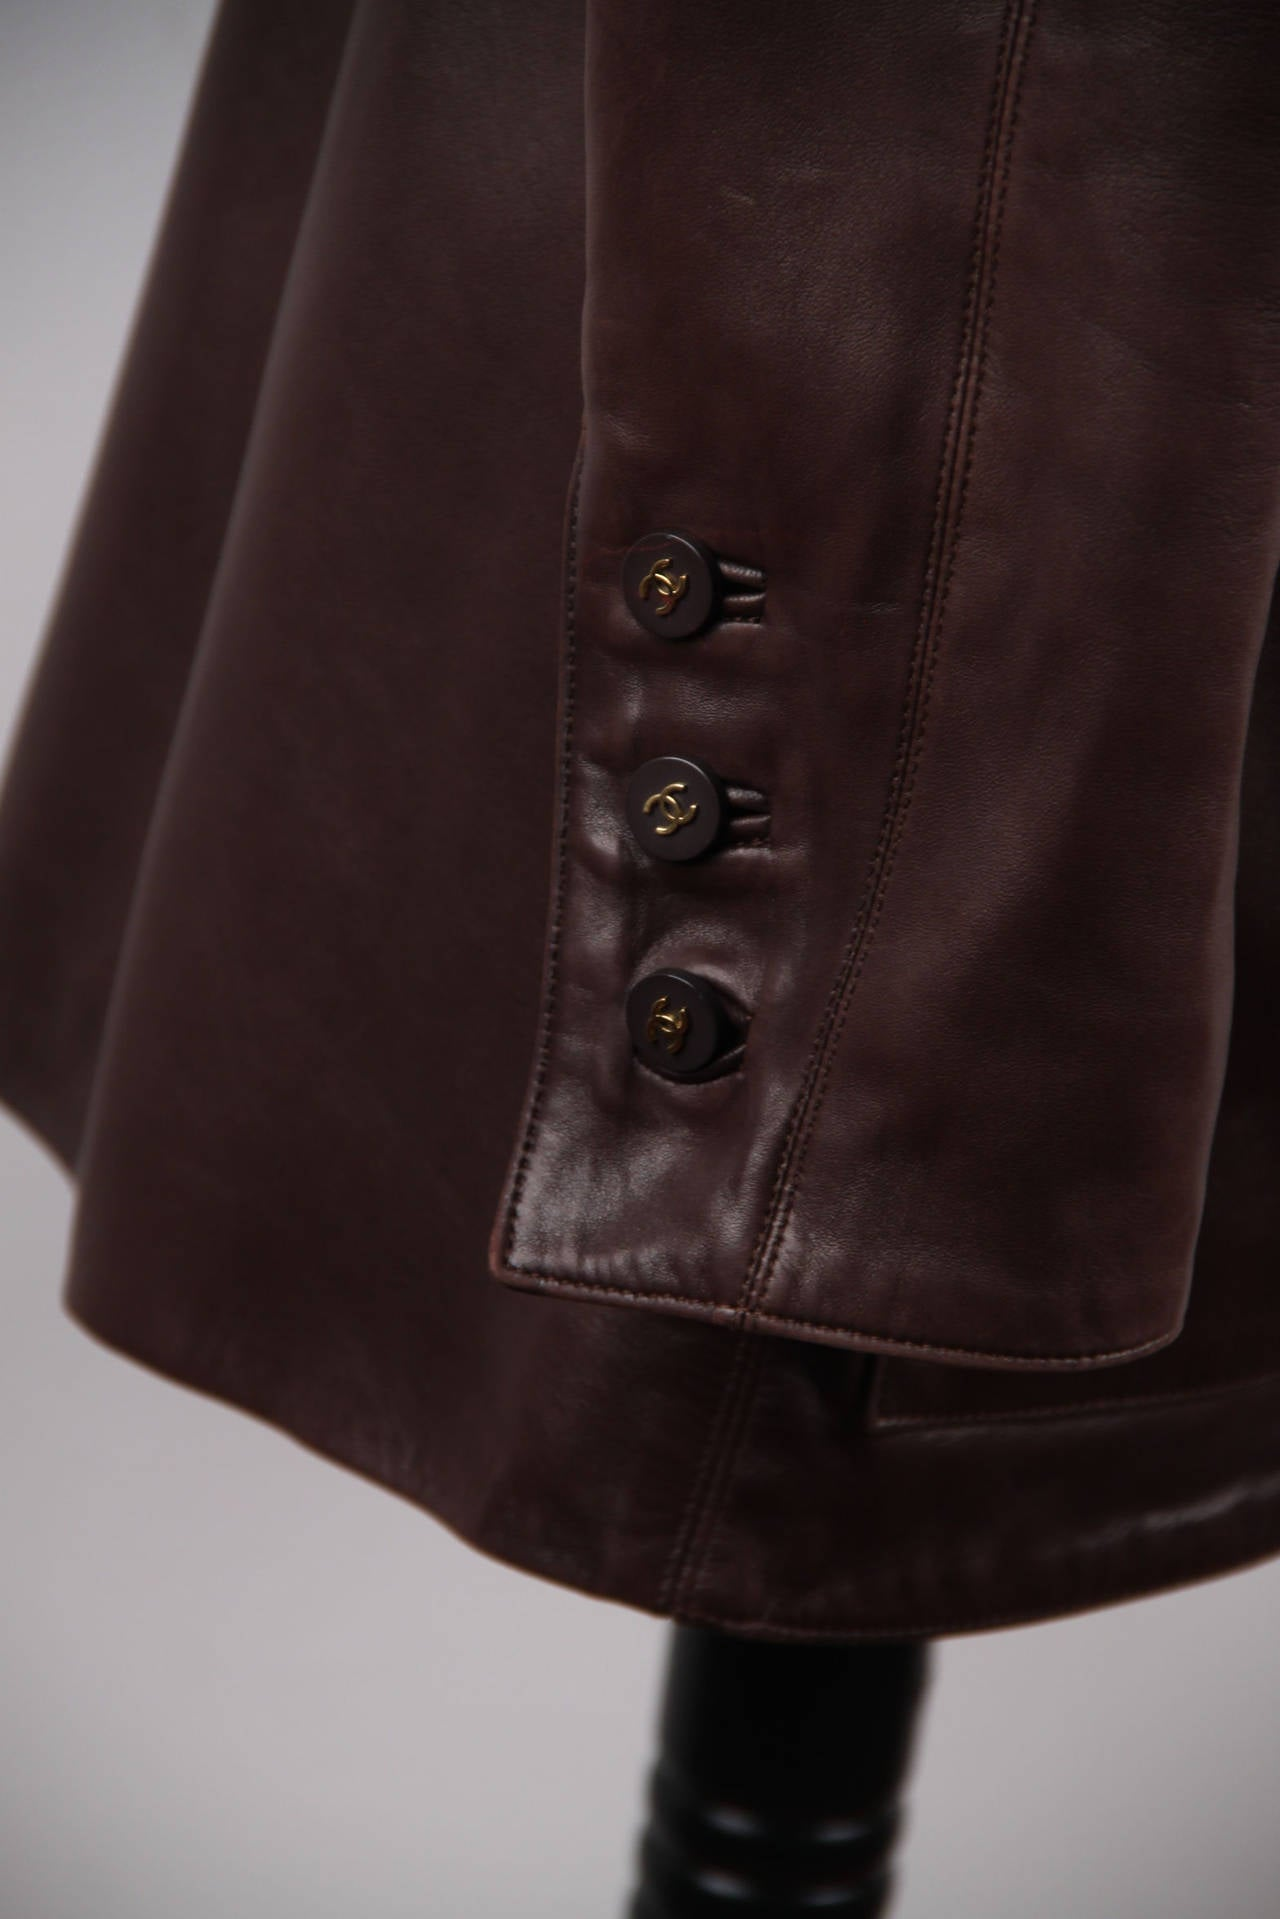 CHANEL BOUTIQUE VINTAGE Chocolate Brown LEATHER JACKET Blazer SIZE 38 FR 6